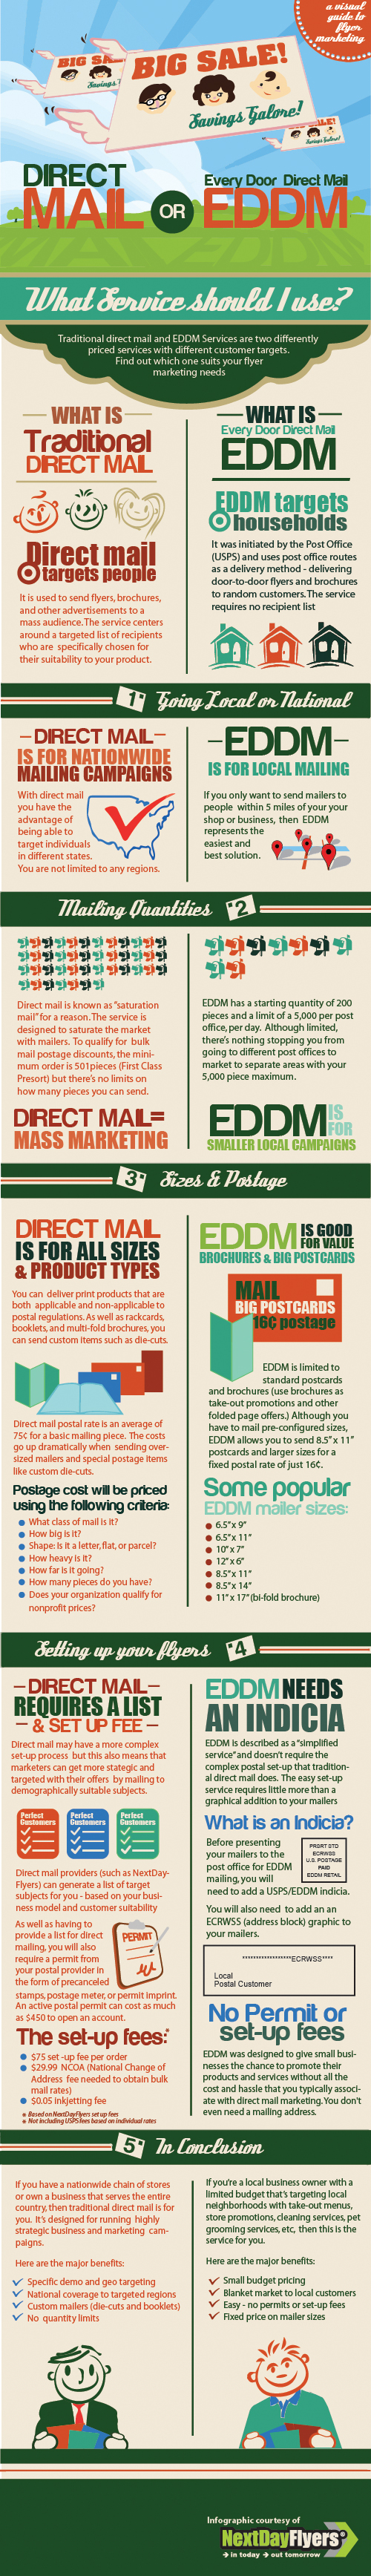 EDDM vs Traditional Mail Services Infographic by NextDayFlyers.com